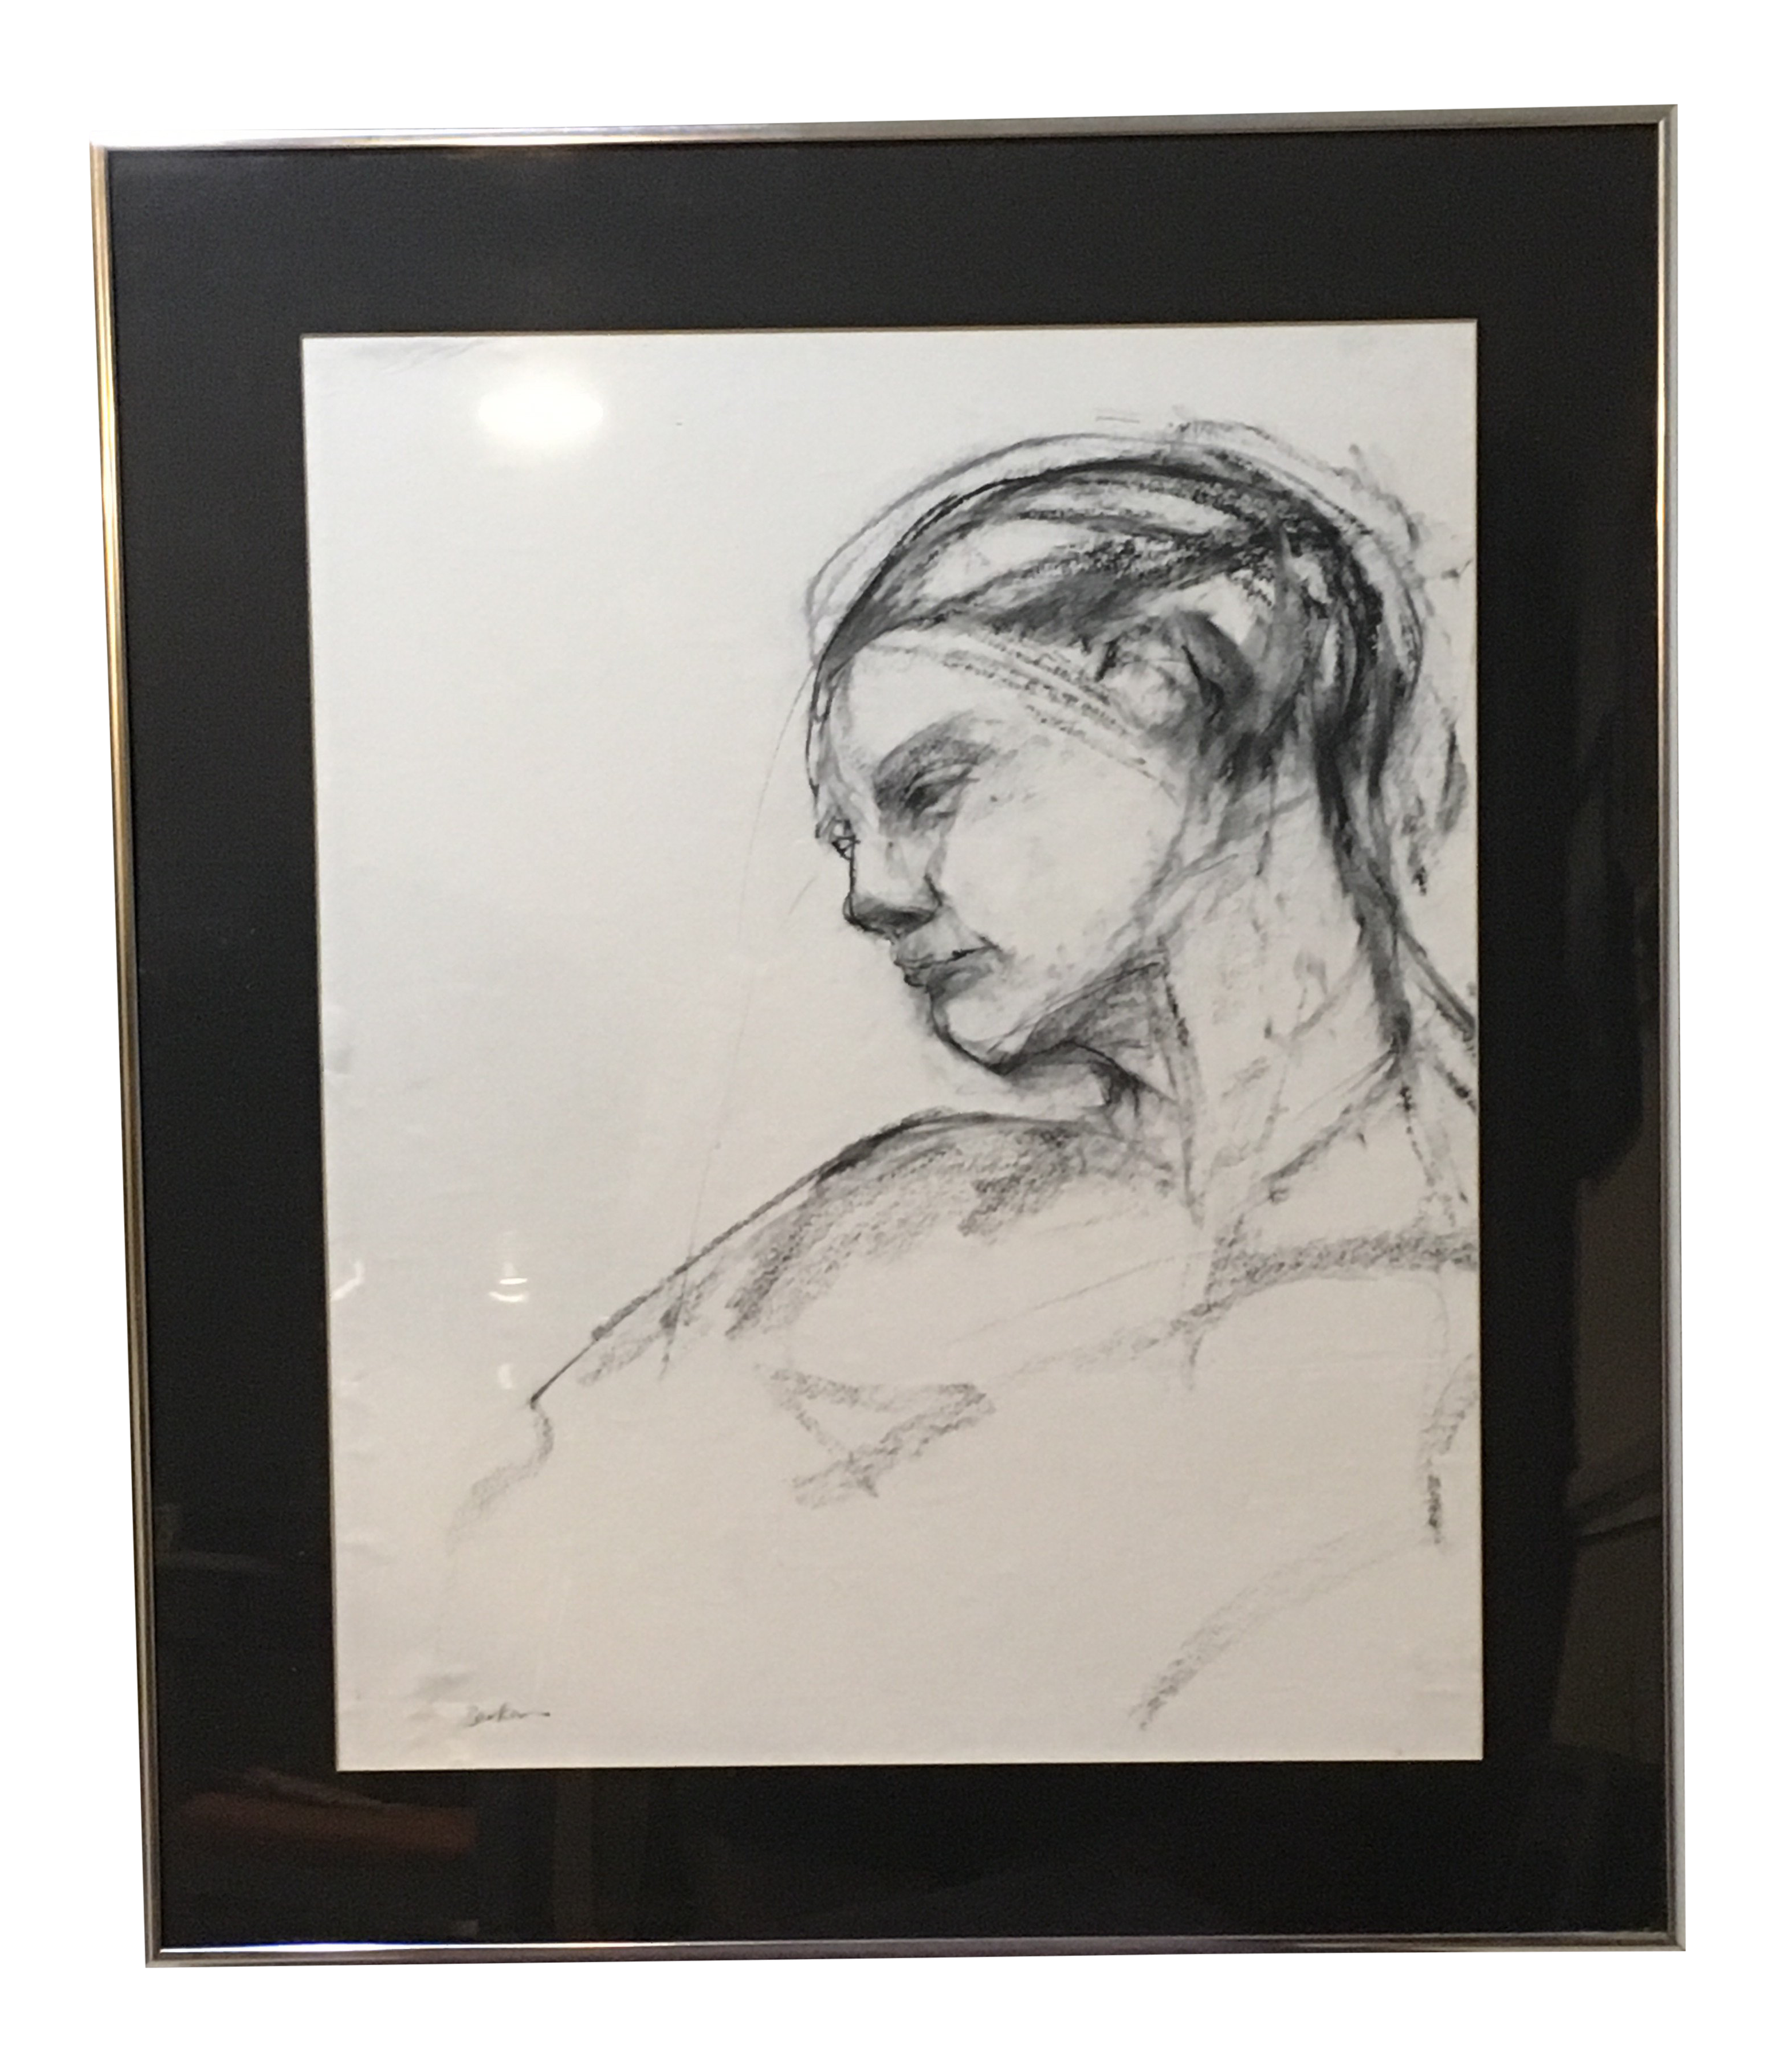 Thoughts drawing charcoal. Original abstract portrait chairish